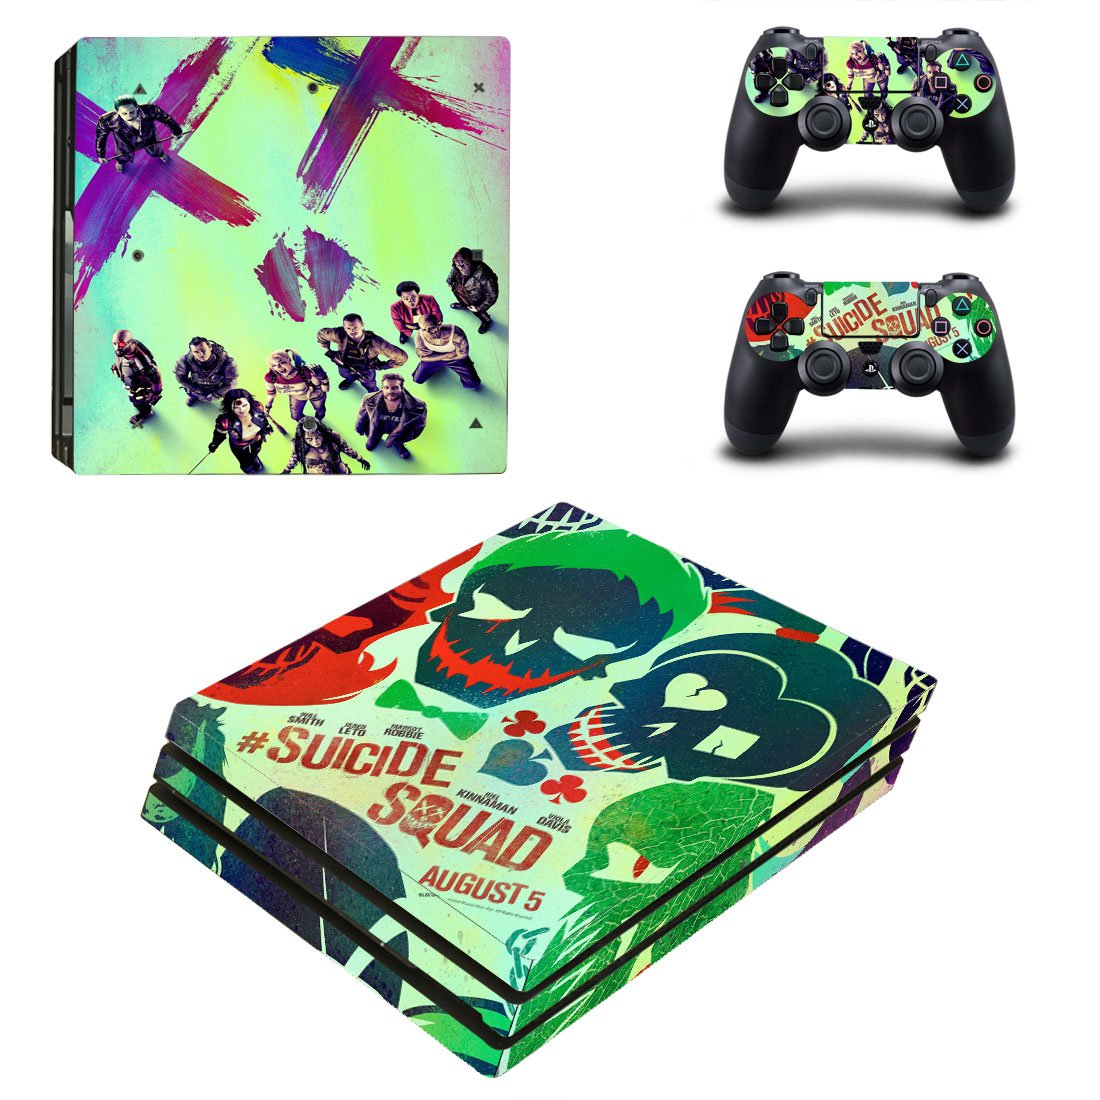 Suicide Squad PS4 Pro Skin Sticker Wrap